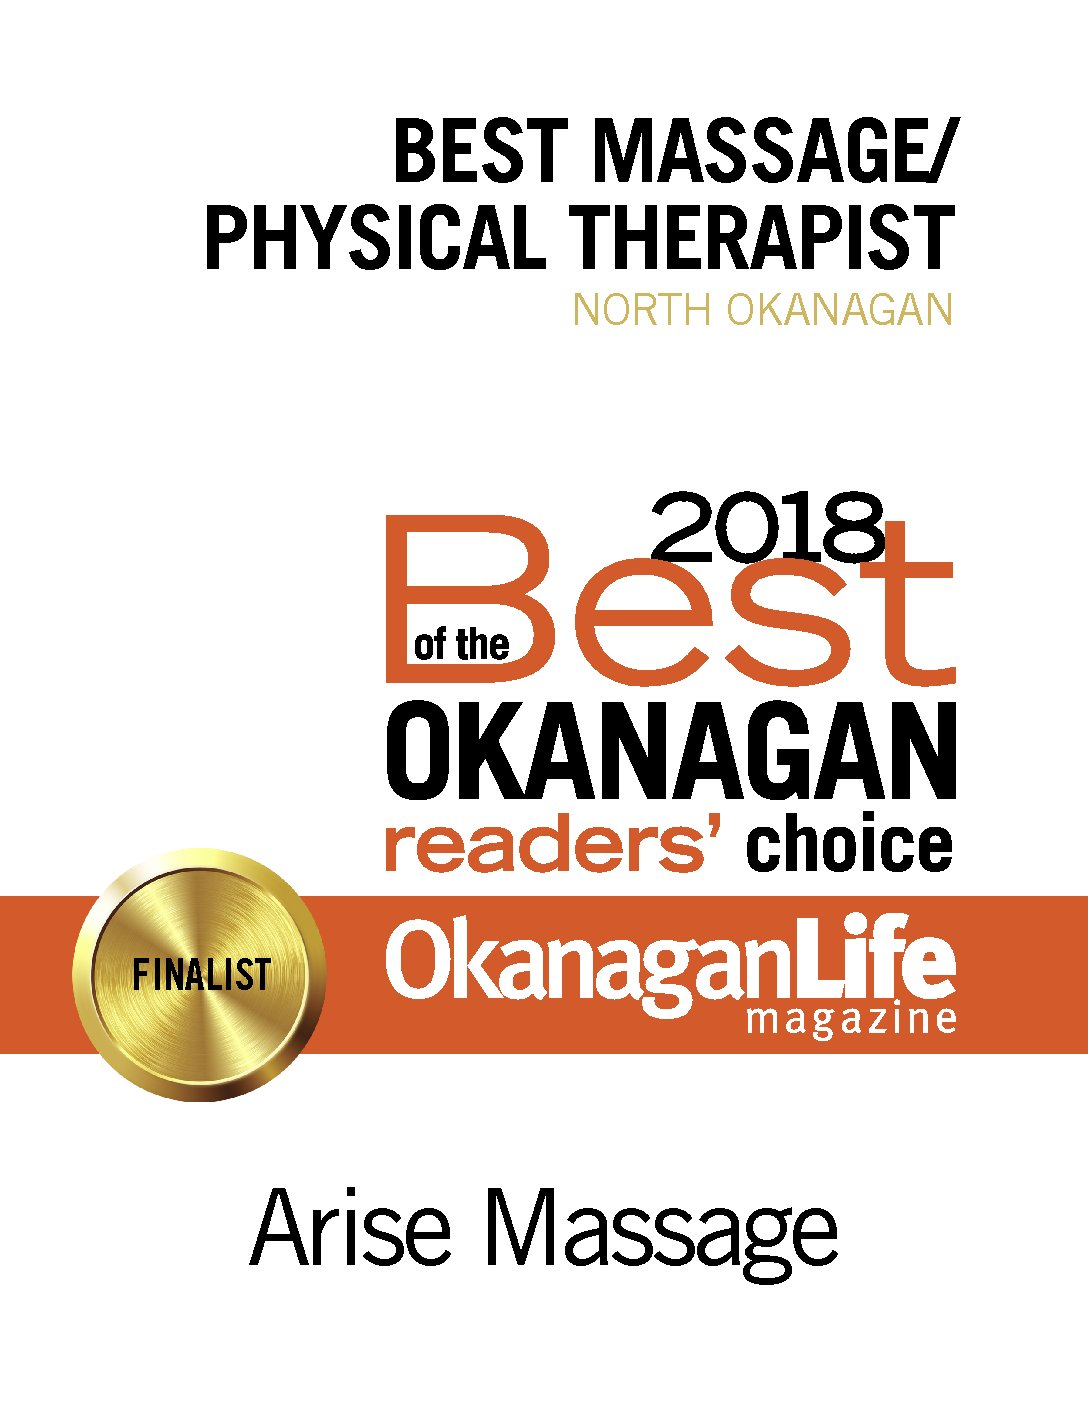 Arise Massage